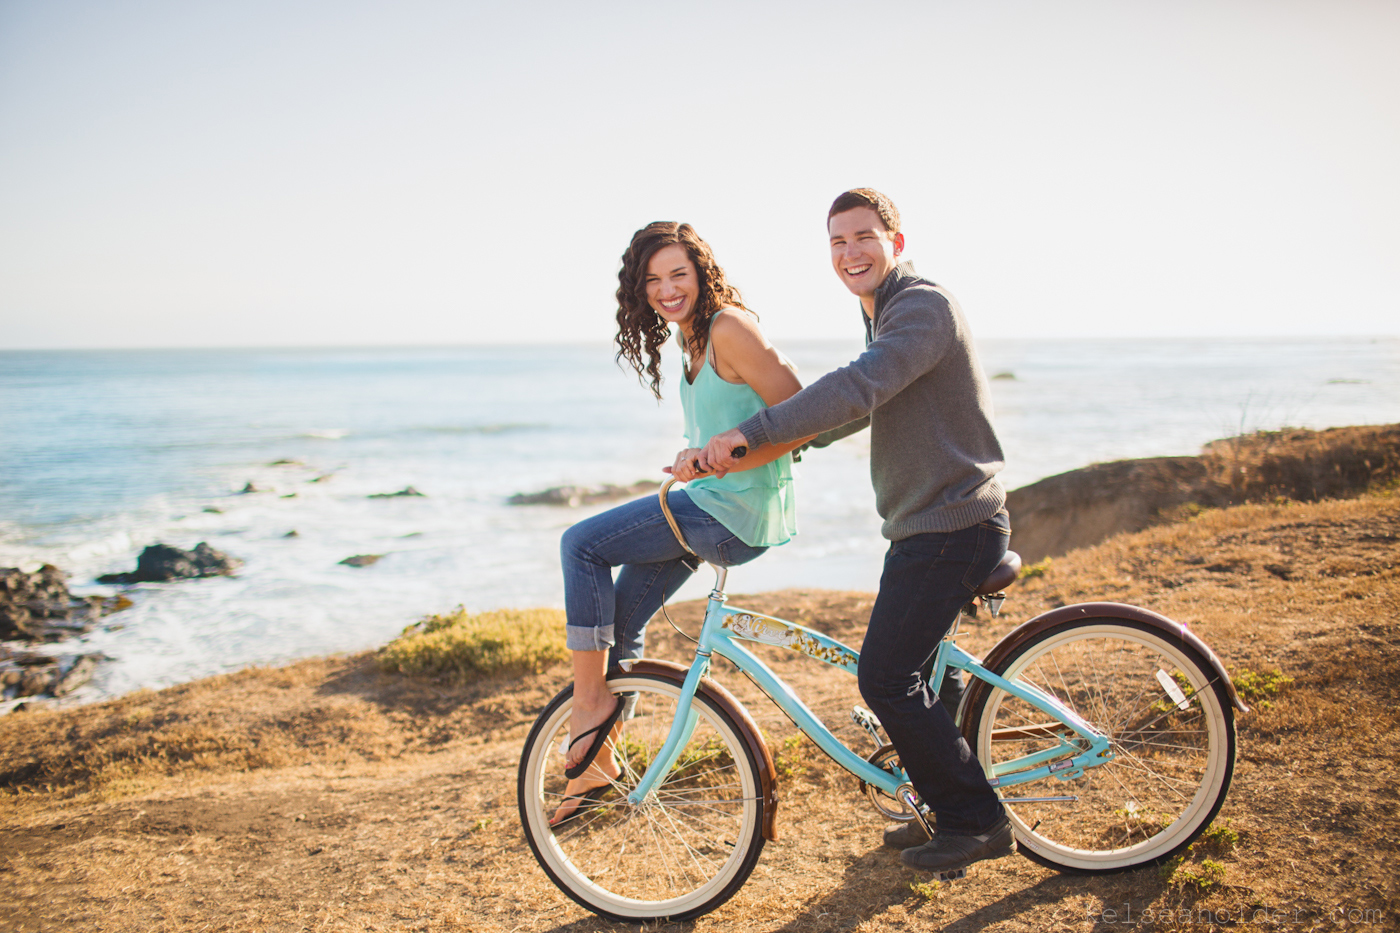 san_luis_obispo_beach_engagement_by_kelsea_holder001